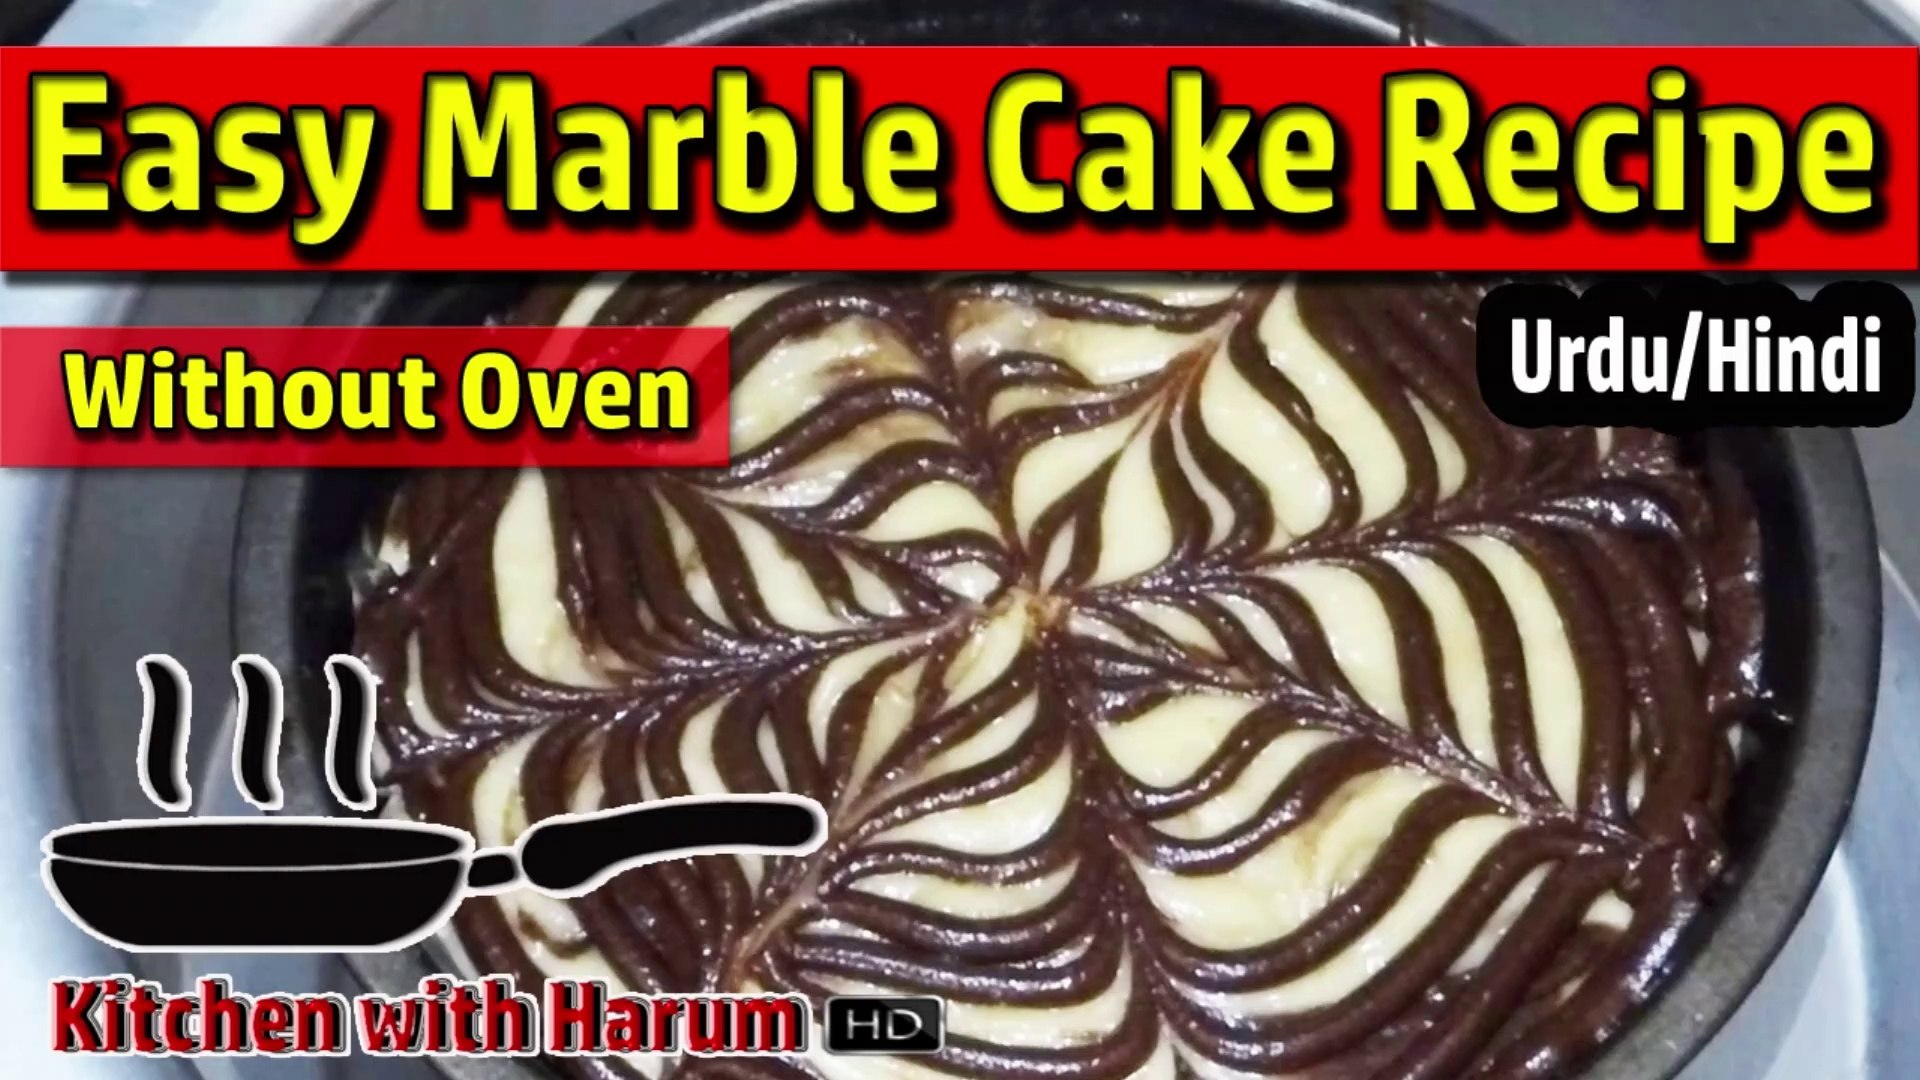 Easy Marble Cake Without Oven In Urdu Hindi Kitchen With Harum Video Dailymotion